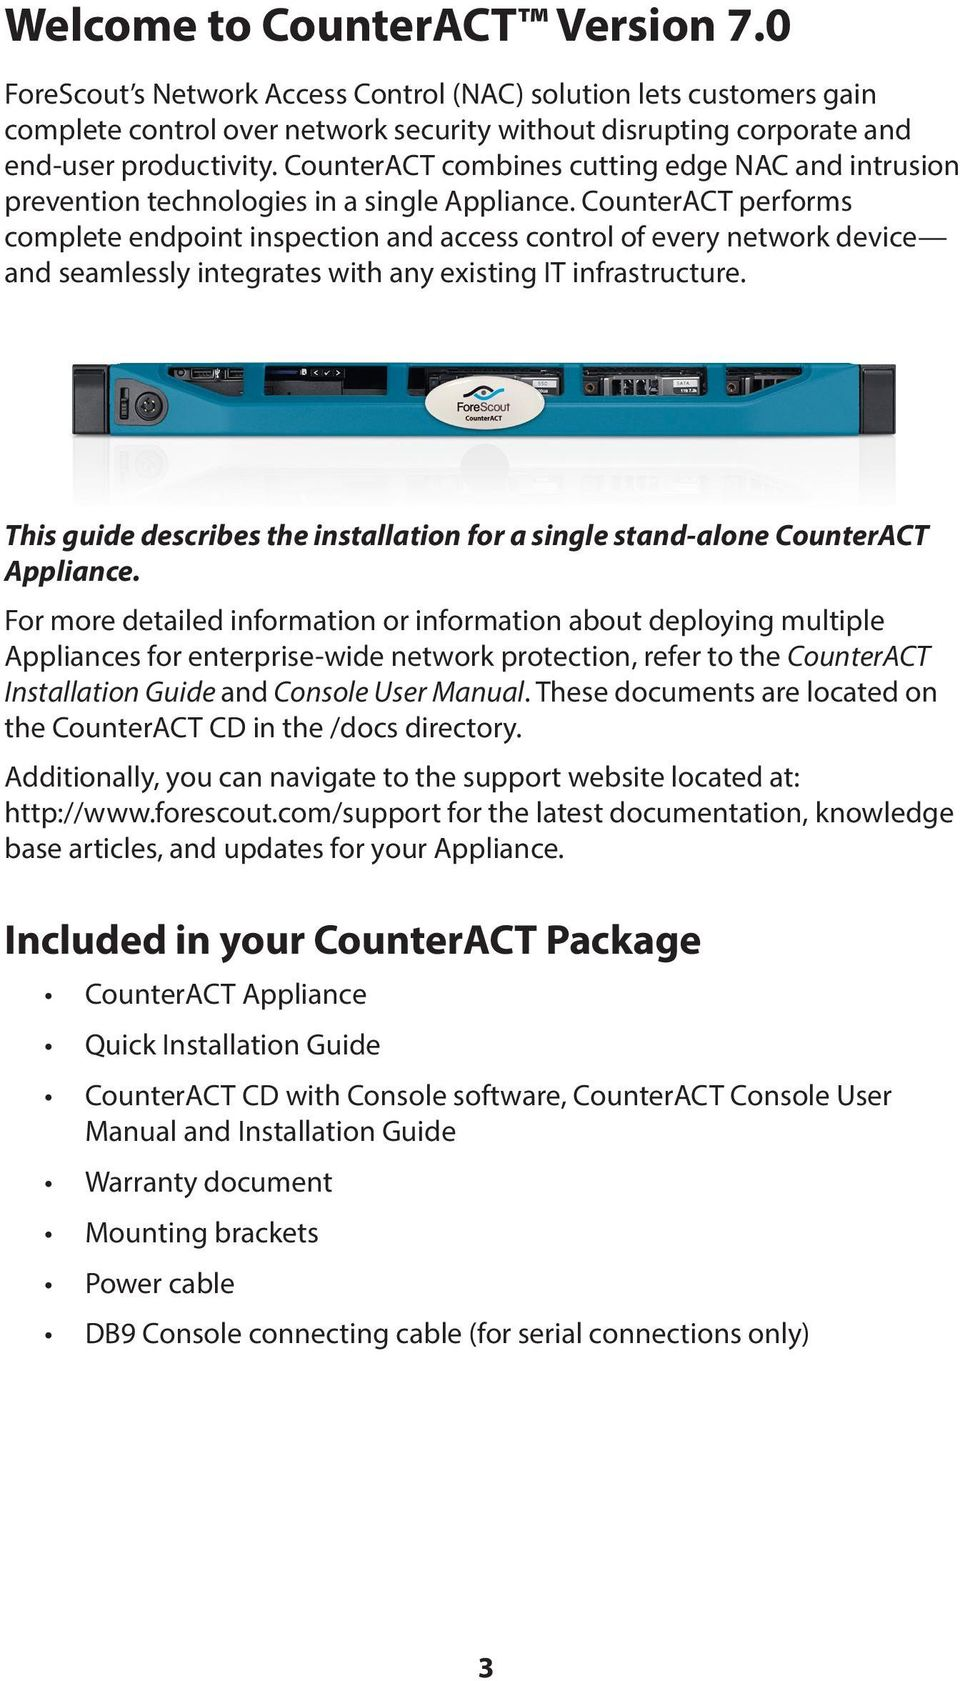 CounterACT performs complete endpoint inspection and access control of every network device and seamlessly integrates with any existing IT infrastructure.